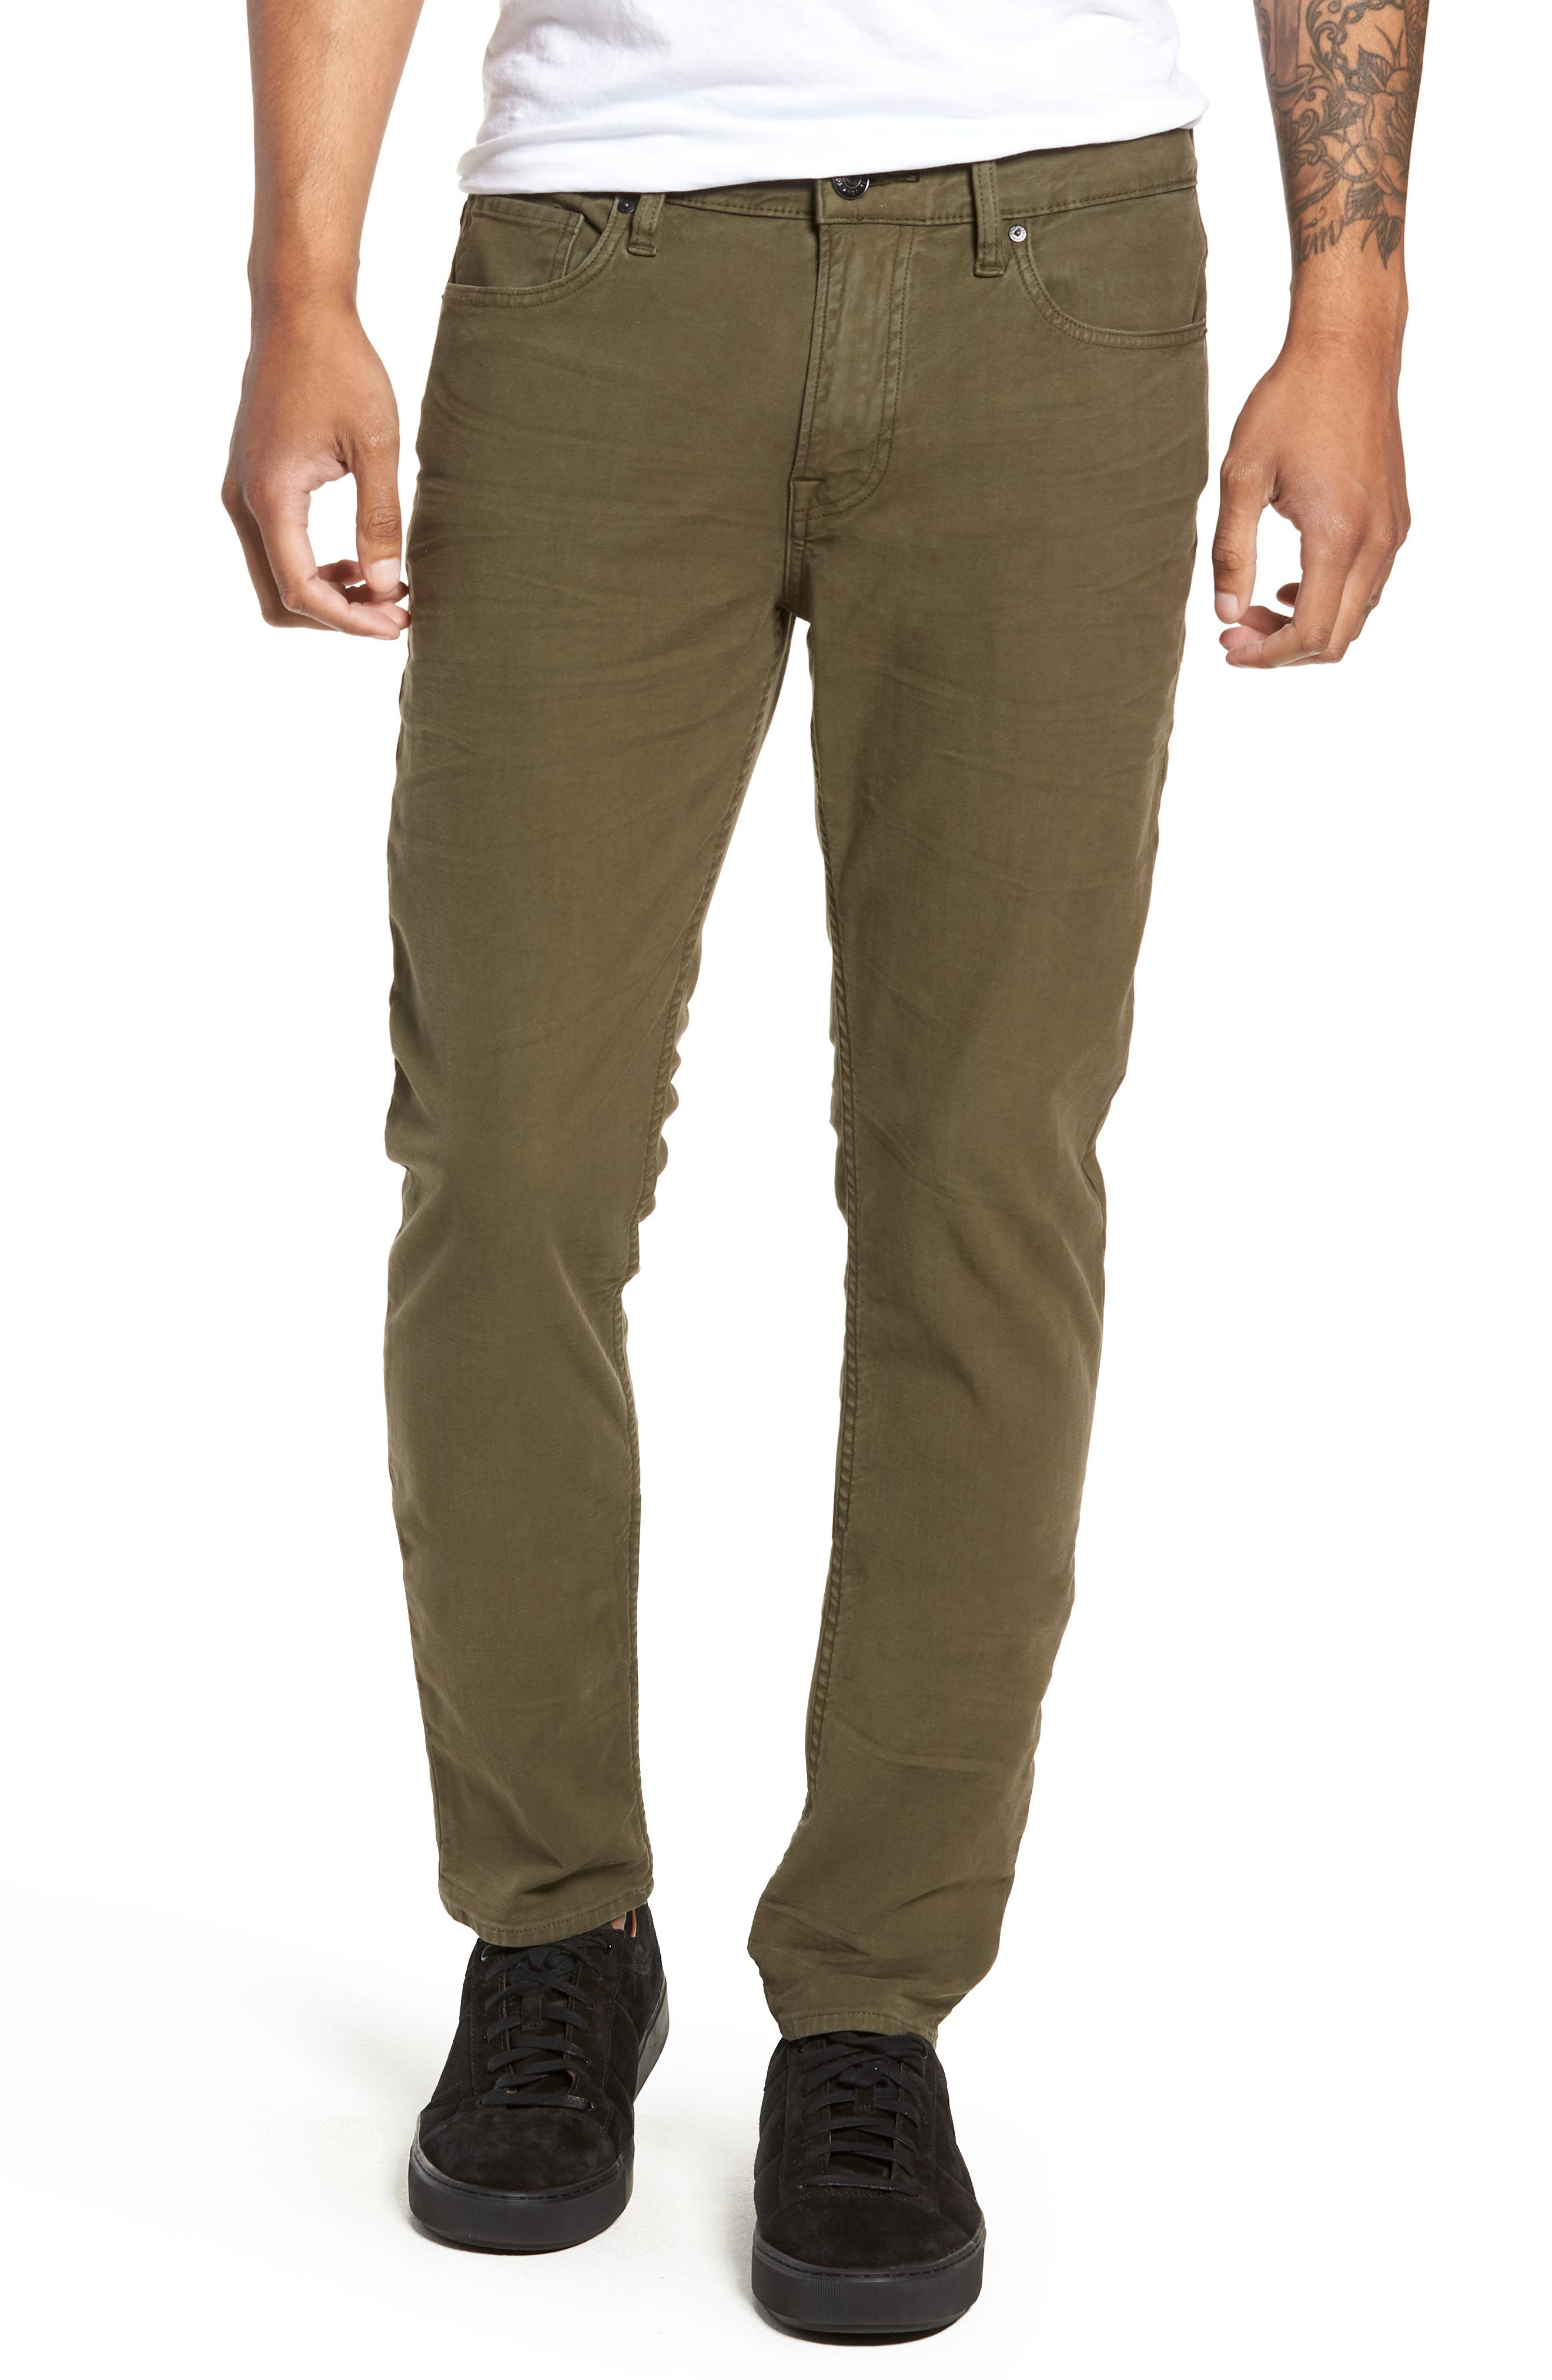 Axl Skinny Fit Jeans,                         Main,                         color, FATIGUE GREEN